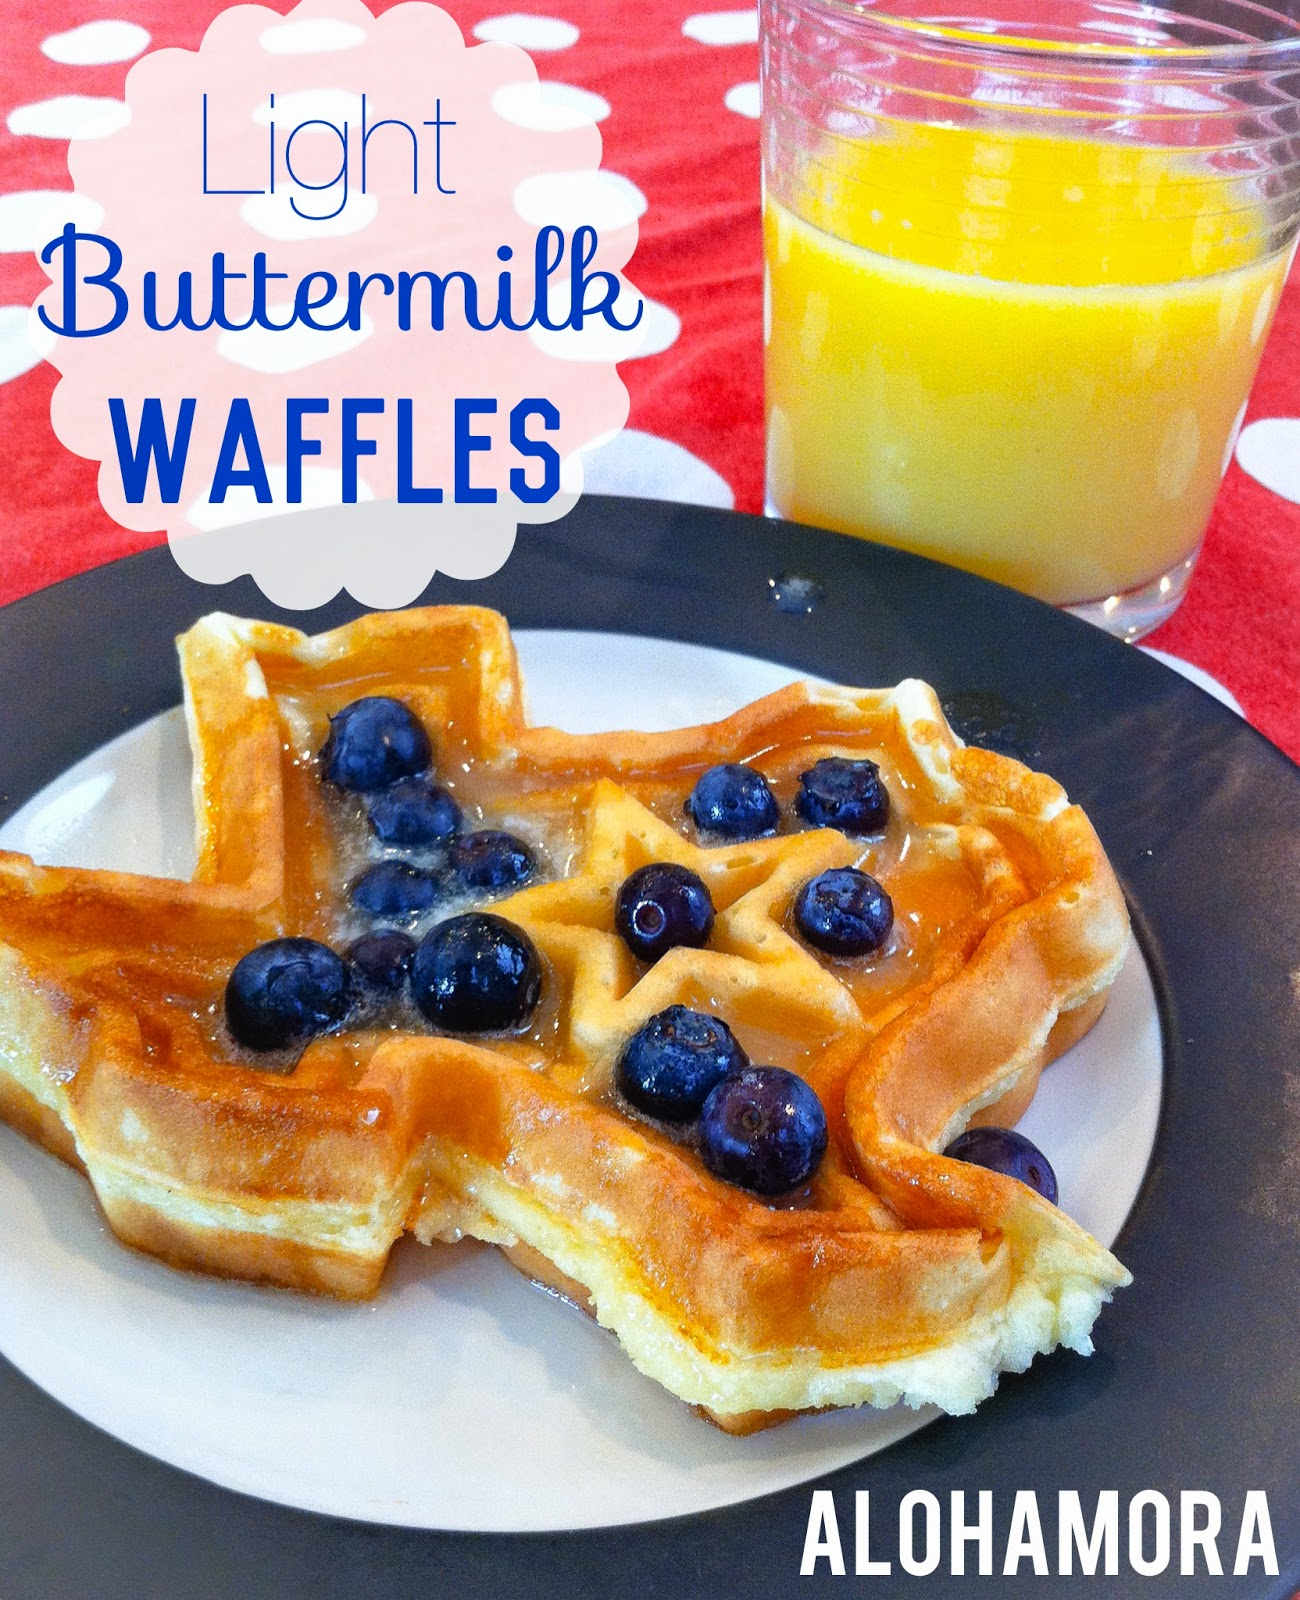 Light Buttermilk Waffles from scratch that are easy to make, take common and simple ingredients, tastes amazing, and all around a delicious breakfast or breakfast for dinner. Alohamora Open a Book http://www.alohamoraopenabook.blogspot.com/